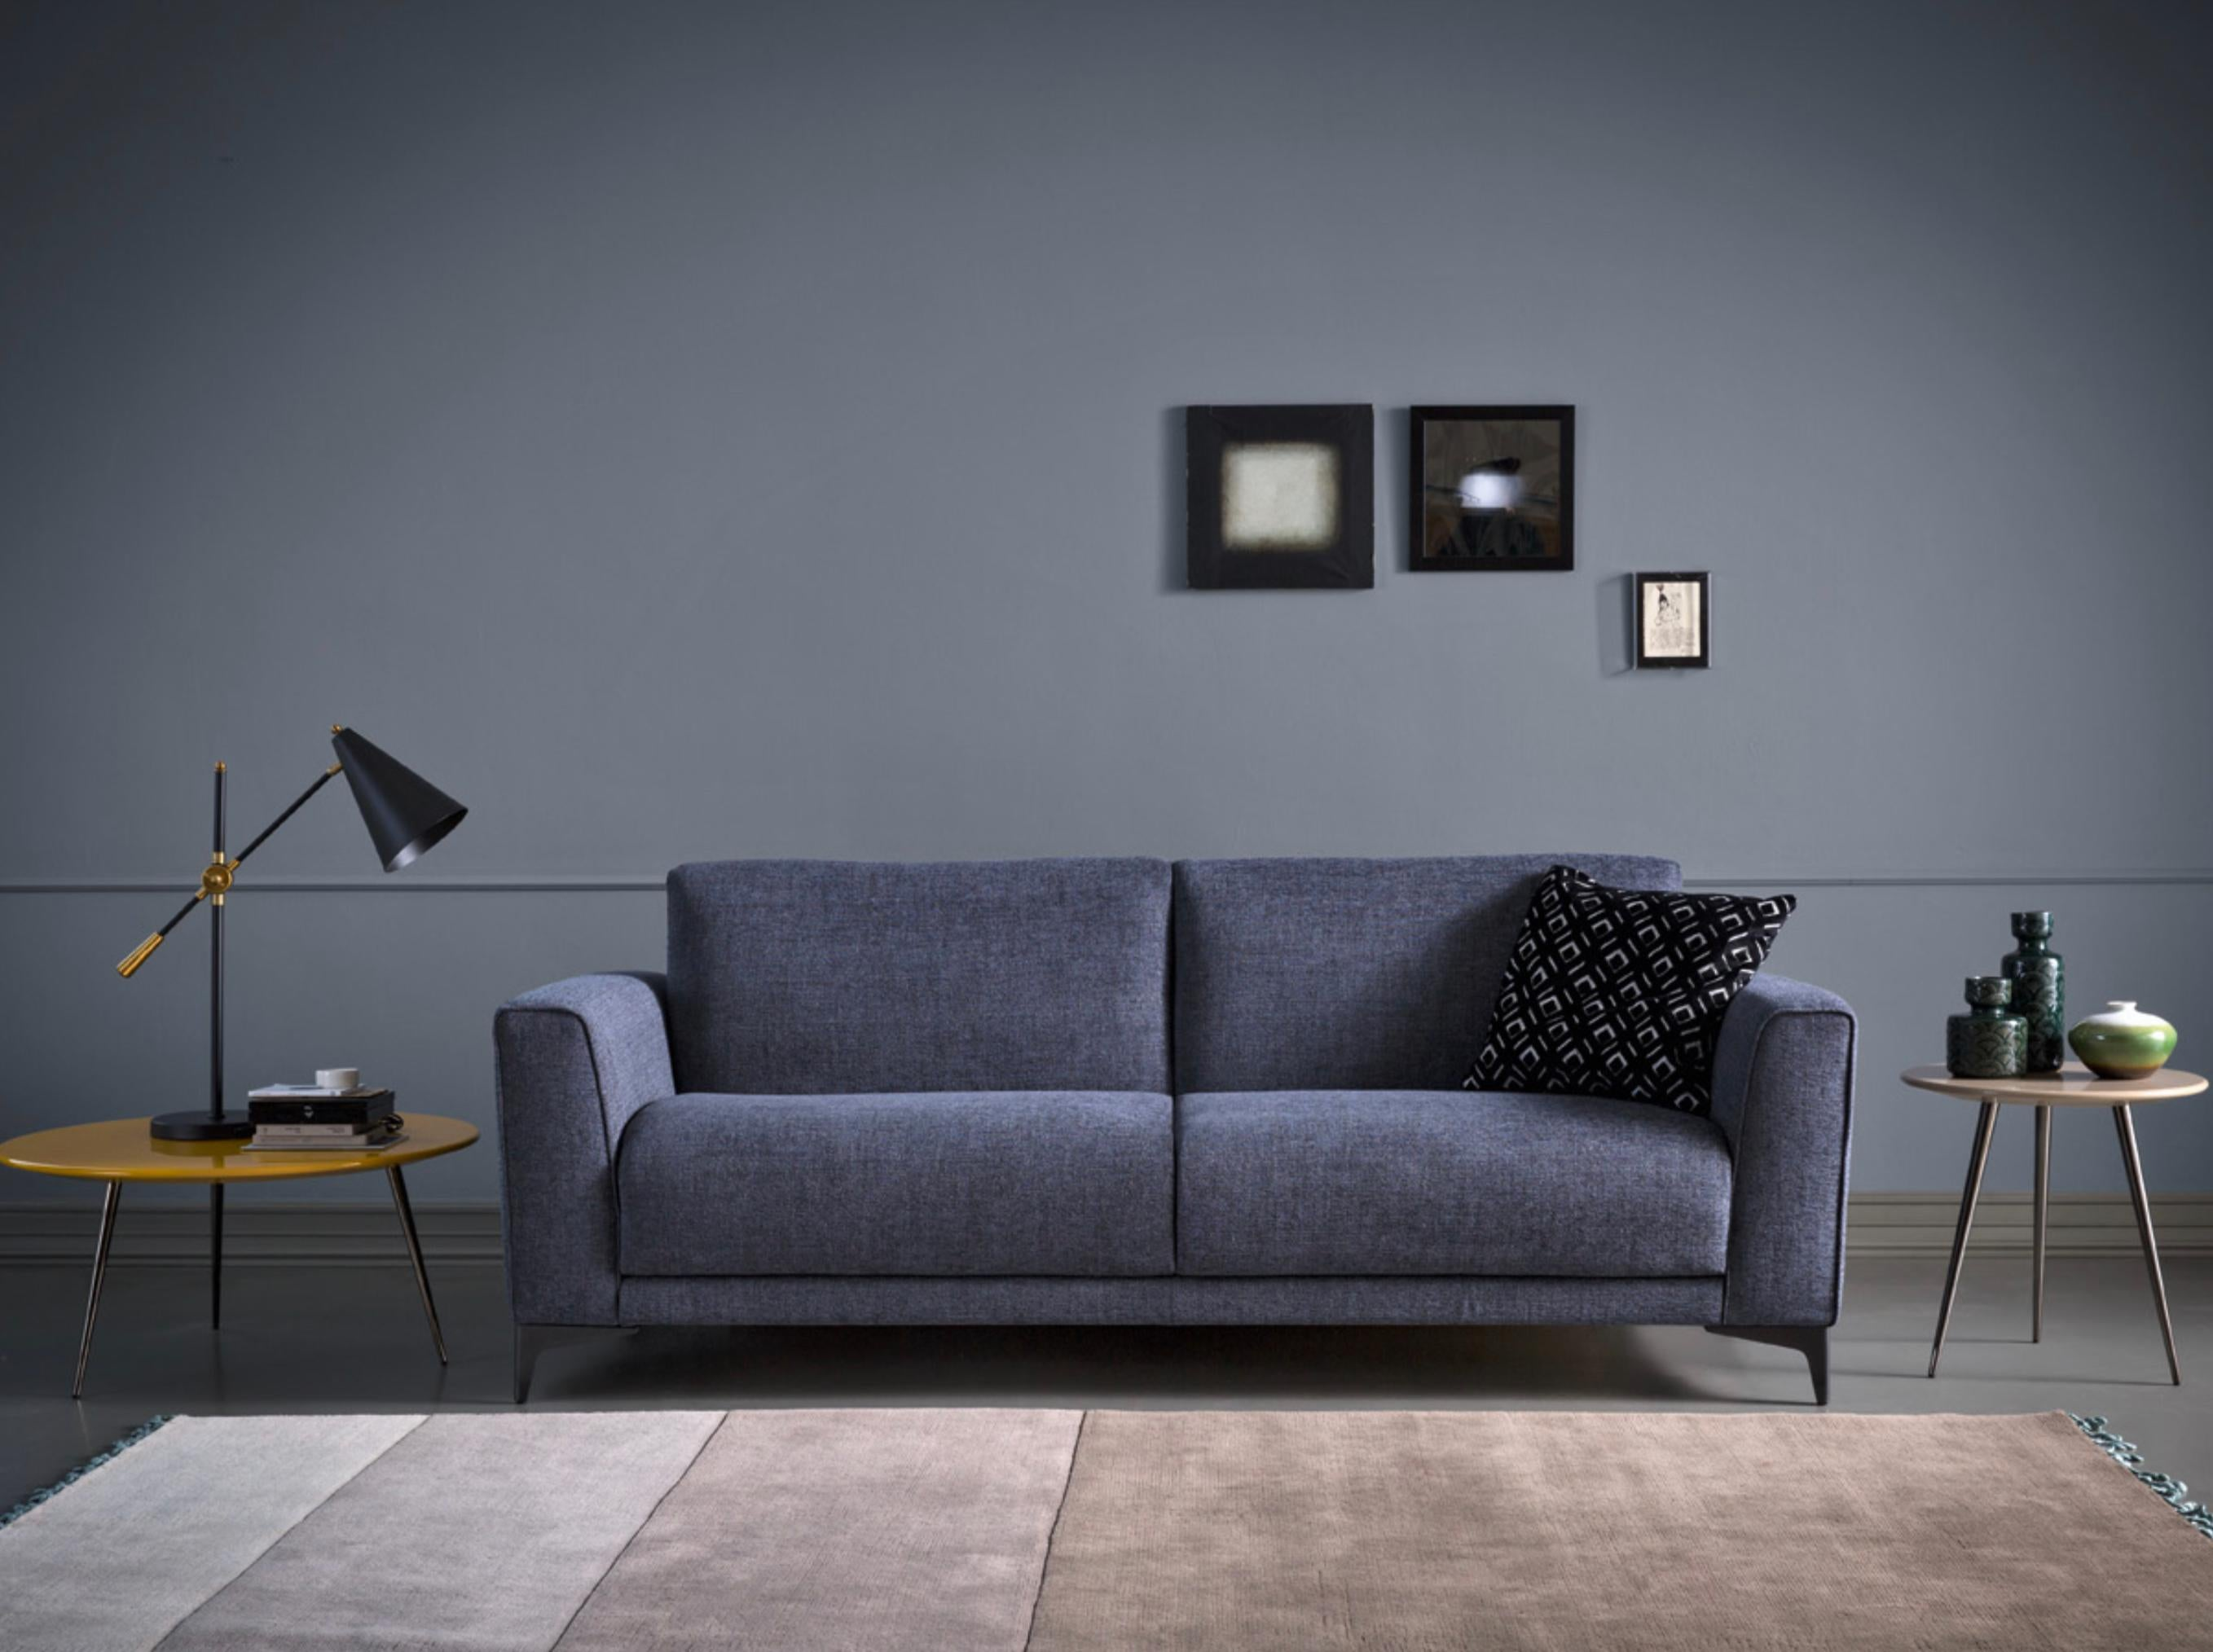 Modern Italian Sofa Bed, Fabric, Contemporary Design Made in Italy